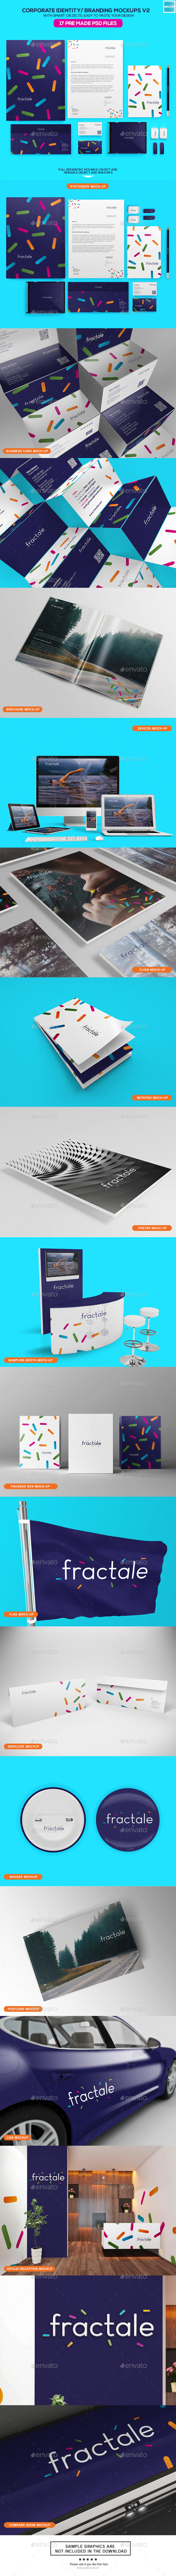 free , mockup , smartphone , freebie , freebies , macbook , mock-up , mockups , moto g ,  nikon d75 , notebook ,psd